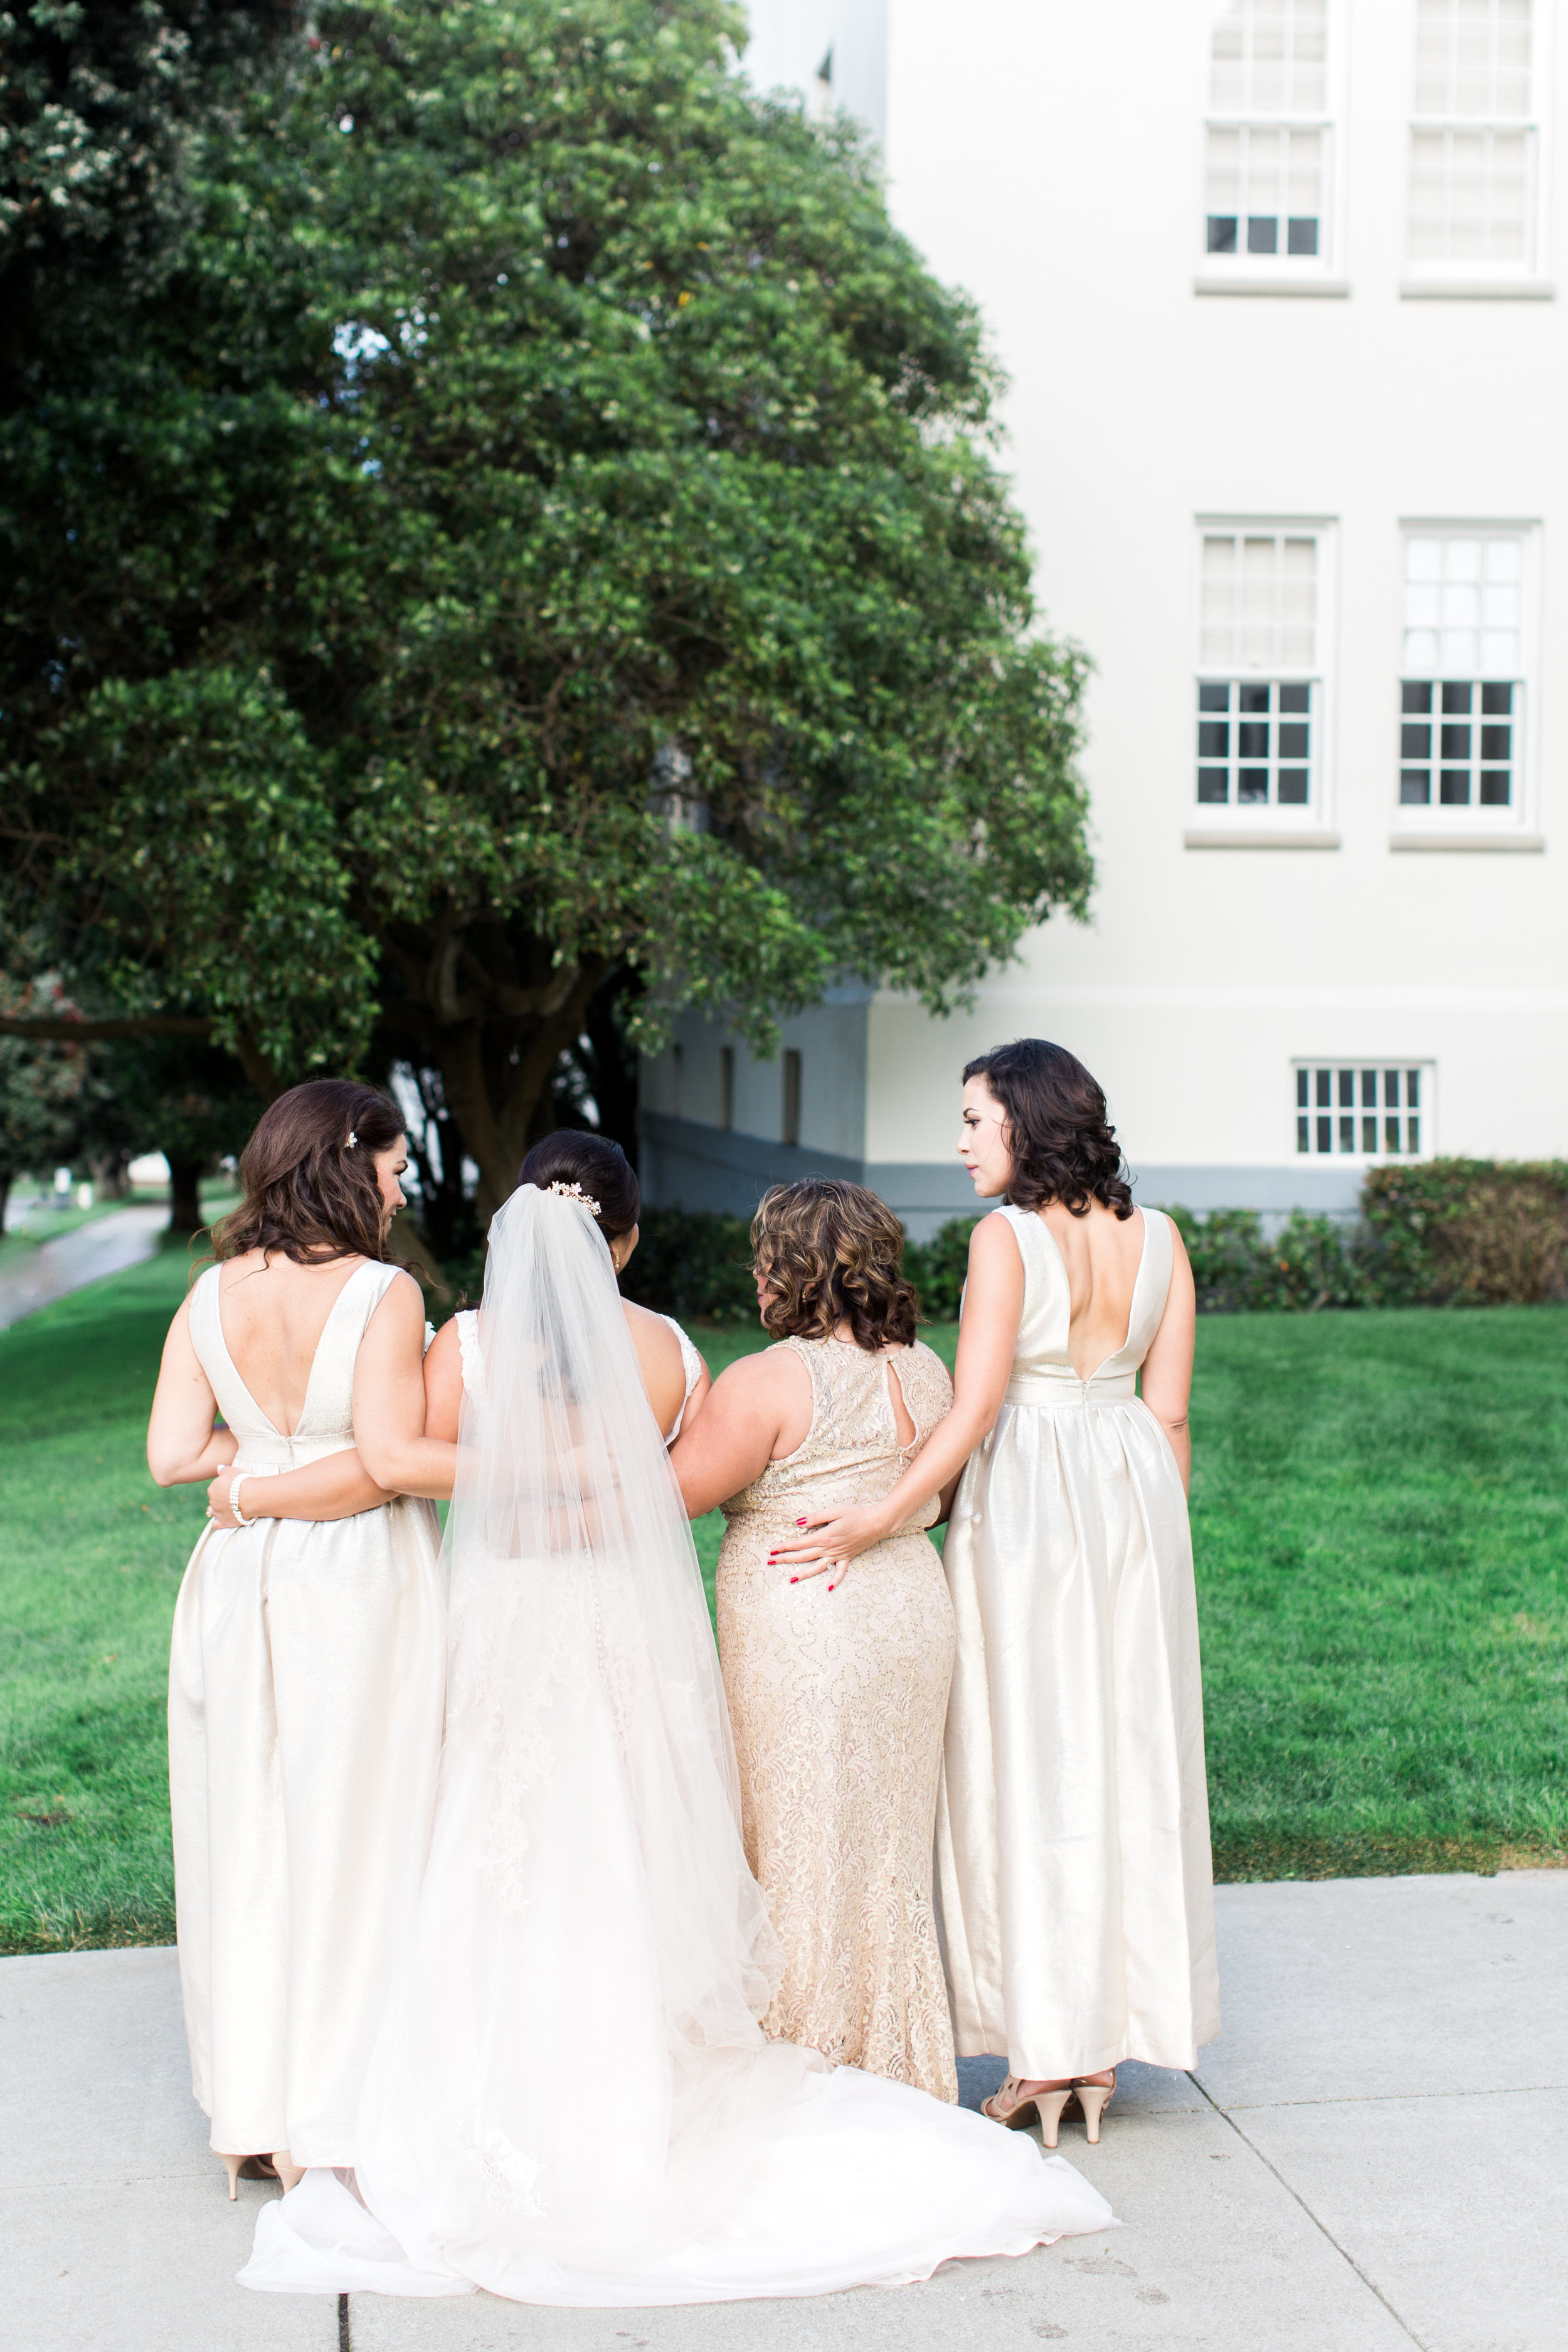 style-inspired-wedding-at-firehouse-8-in-san-francisco-49.jpg